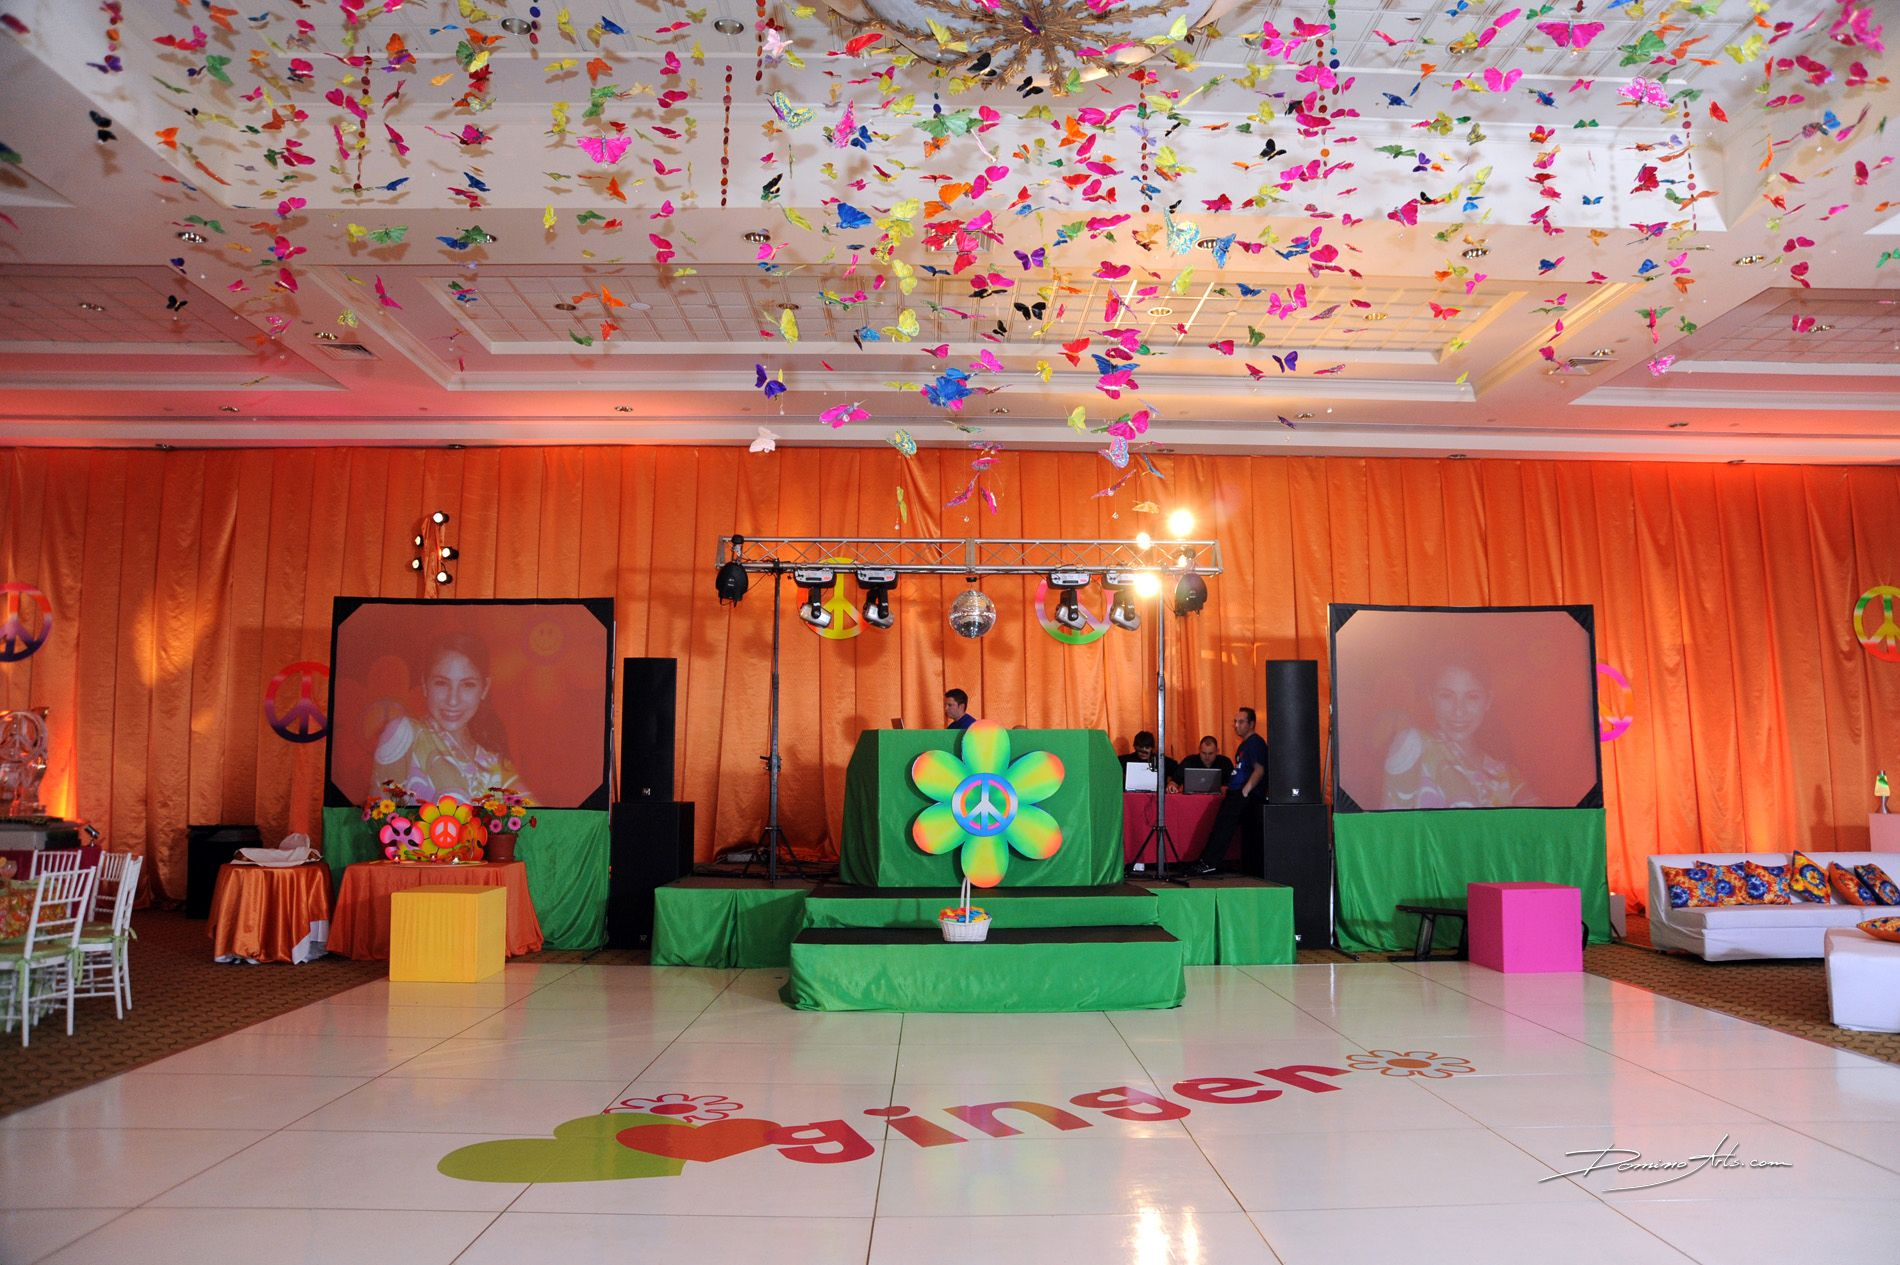 Dance Floor And Stage With Tie Dye Ceiling Treatments 70stheme Tiedye Peace Love Peacesign Linzievents